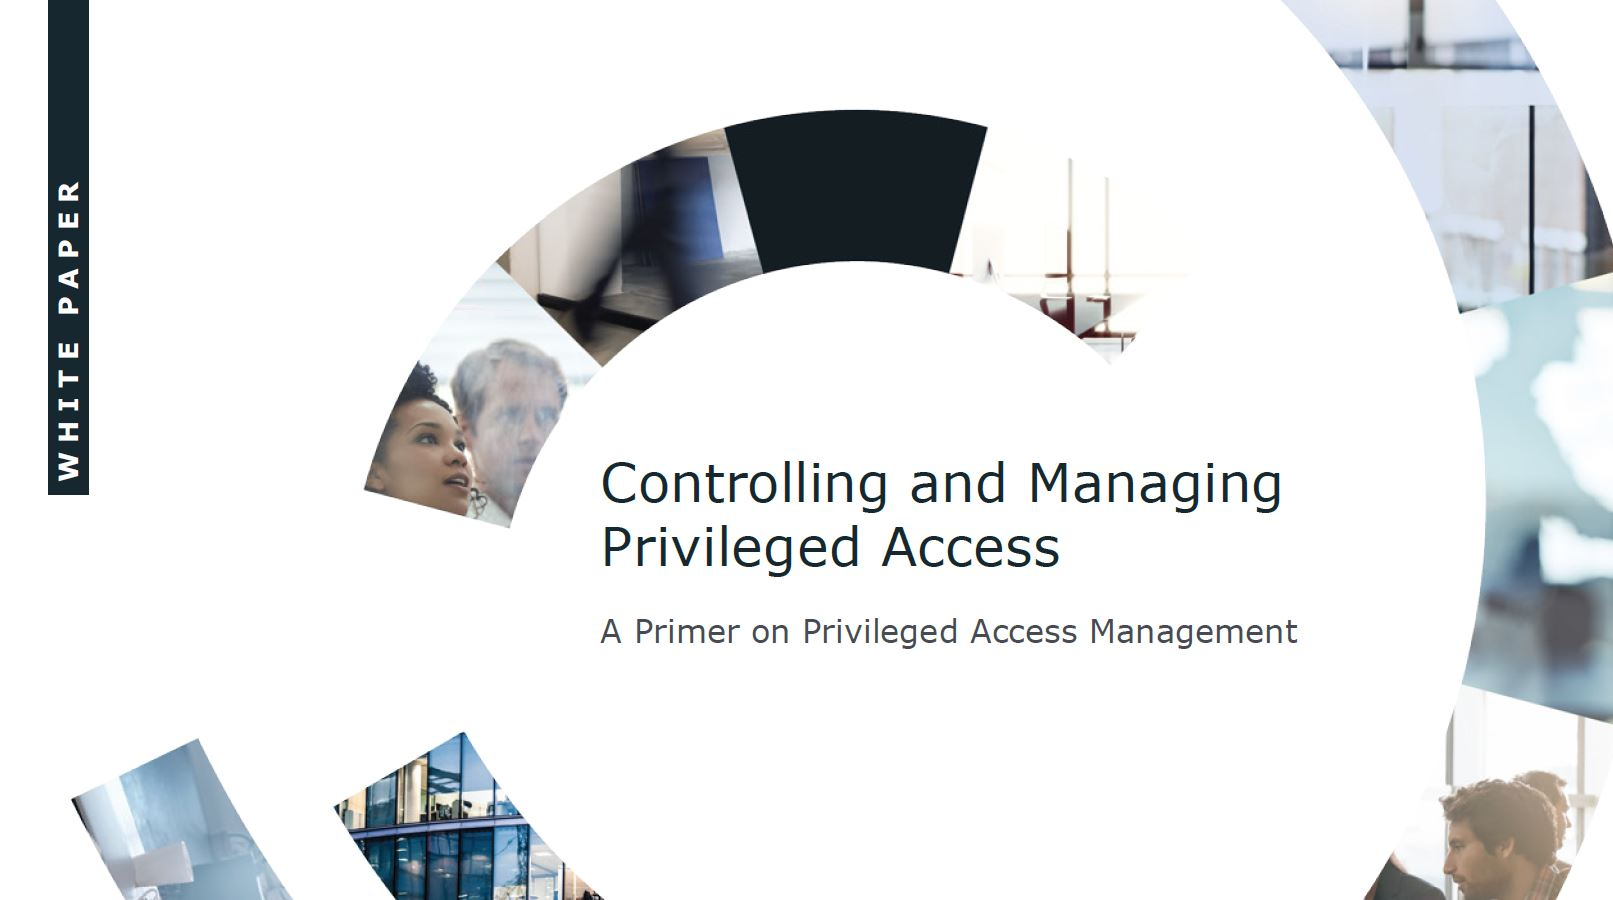 Controlling & Managing Privileged Access: A Primer on Privileged Access Management